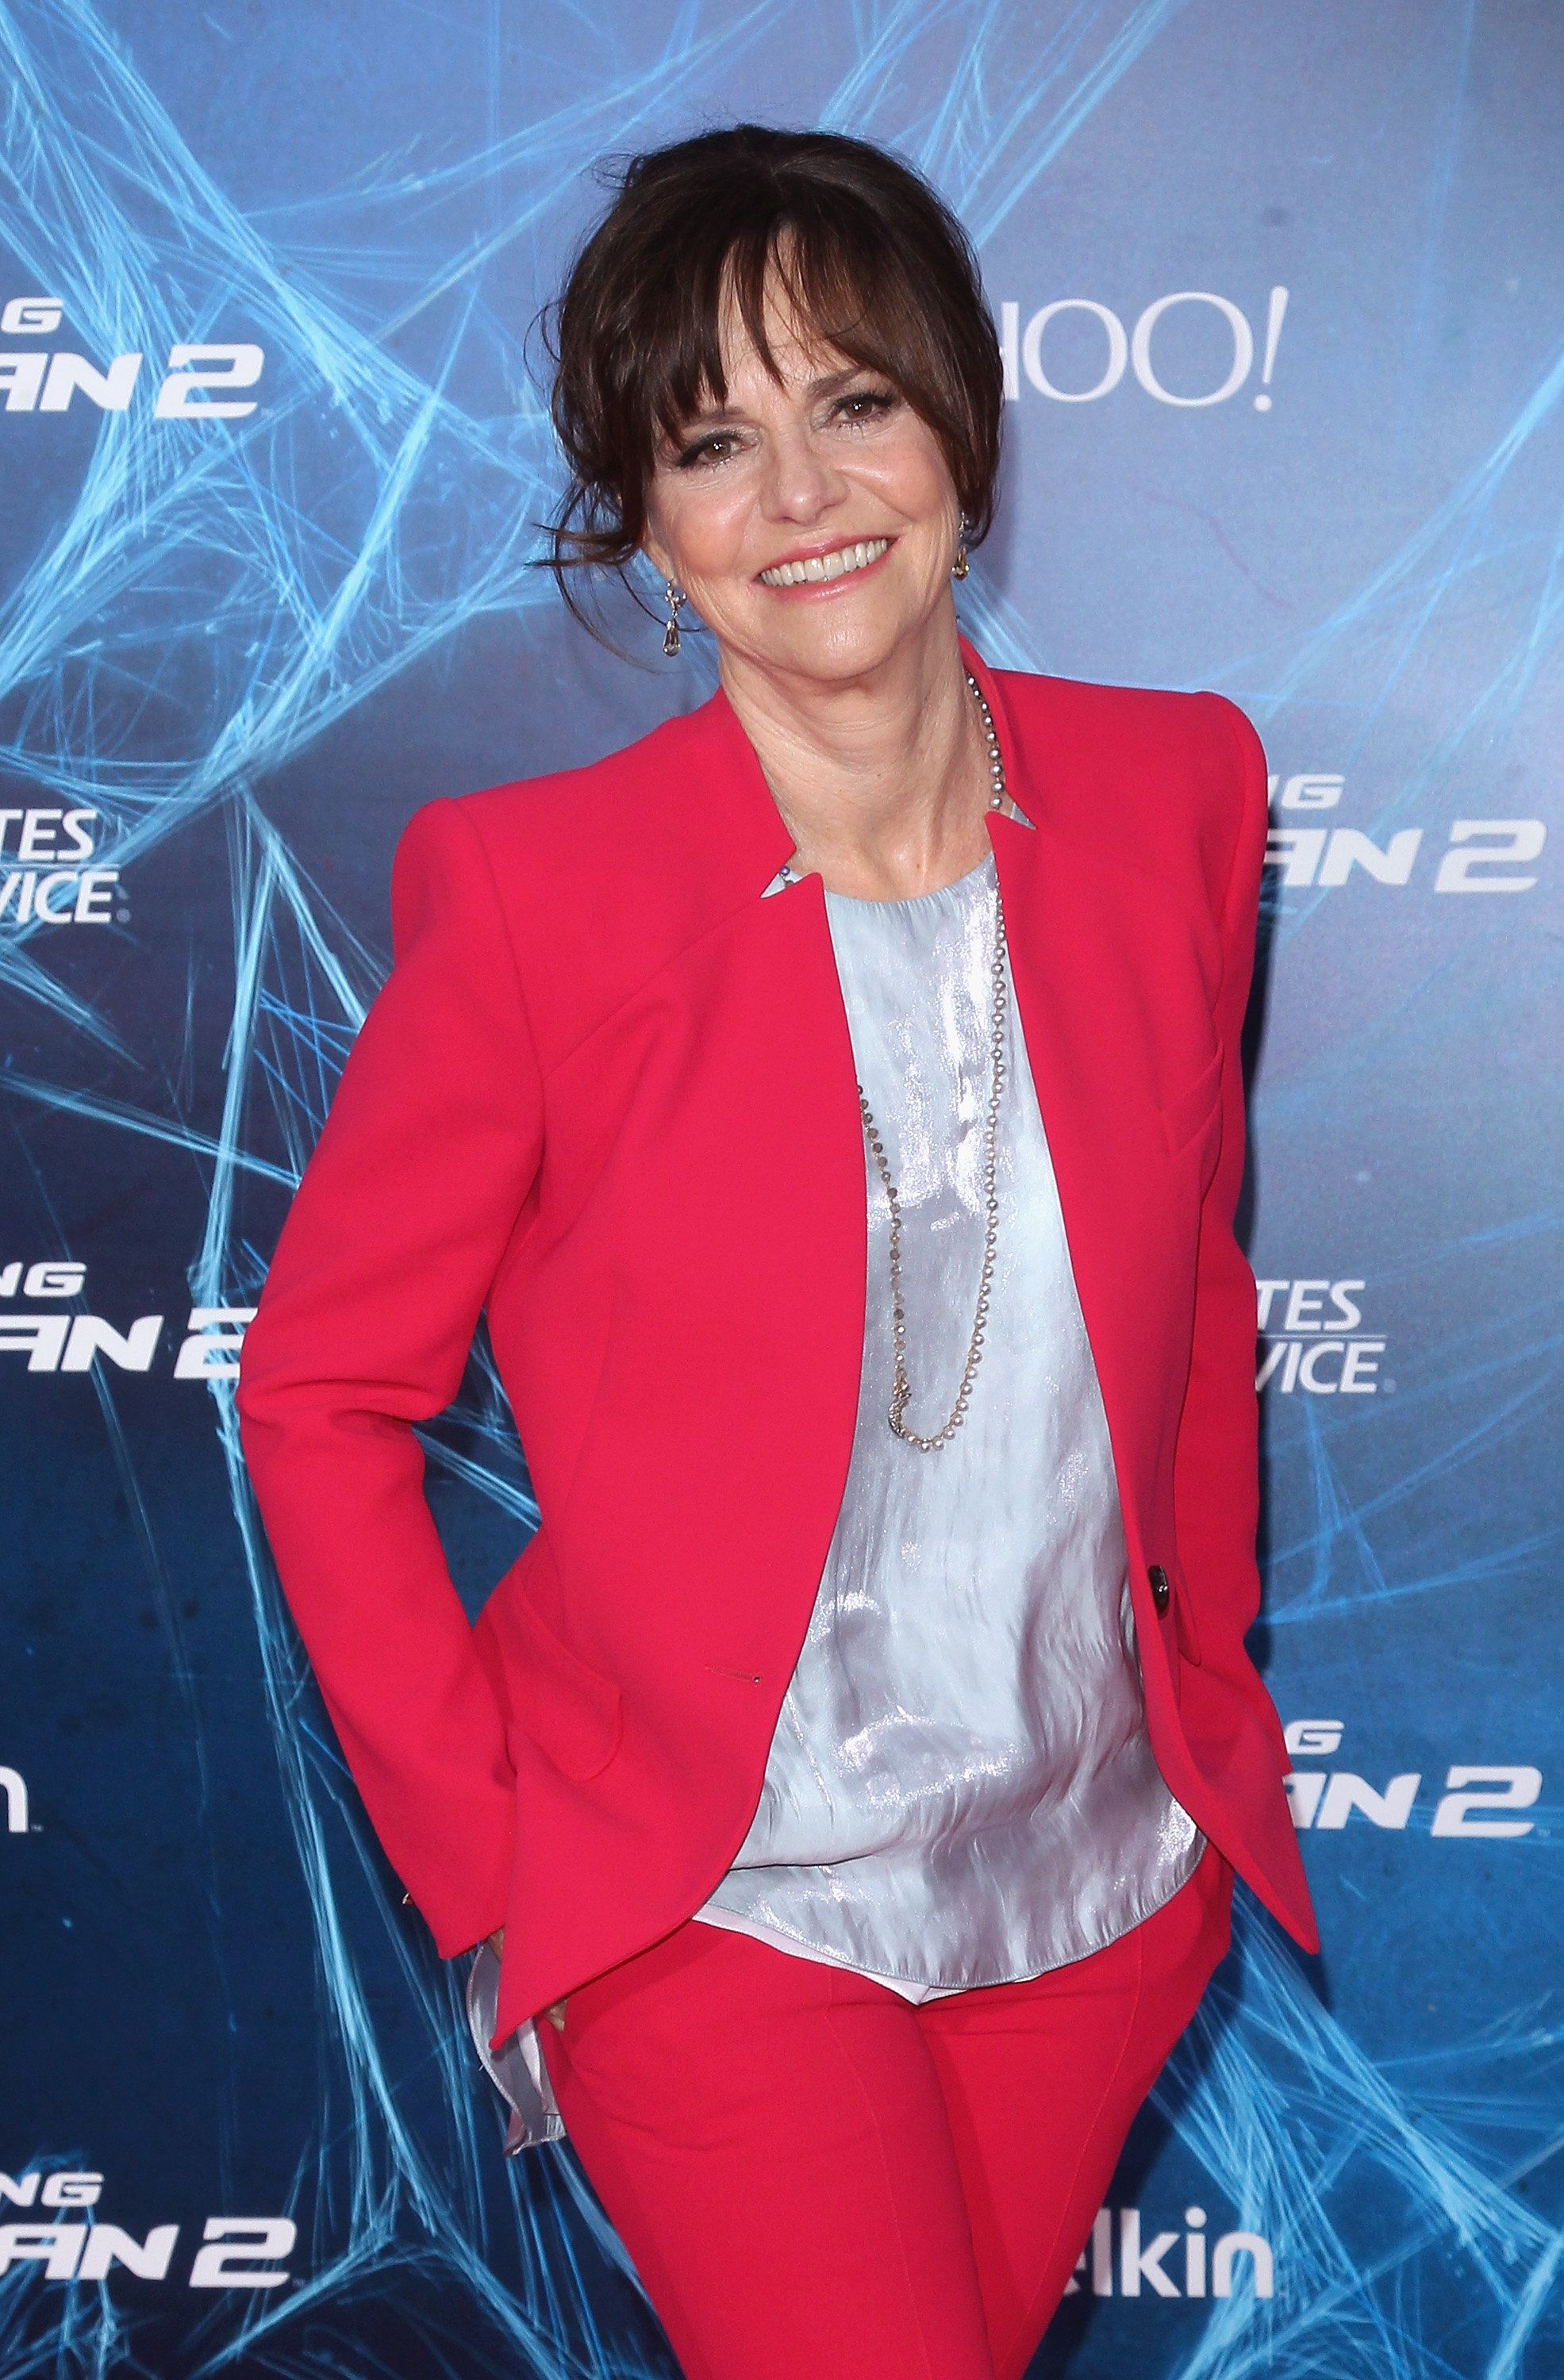 Sally Field atthe 'The Amazing Spider-Man 2' New York Premiere on April 24, 2014, in New York City.